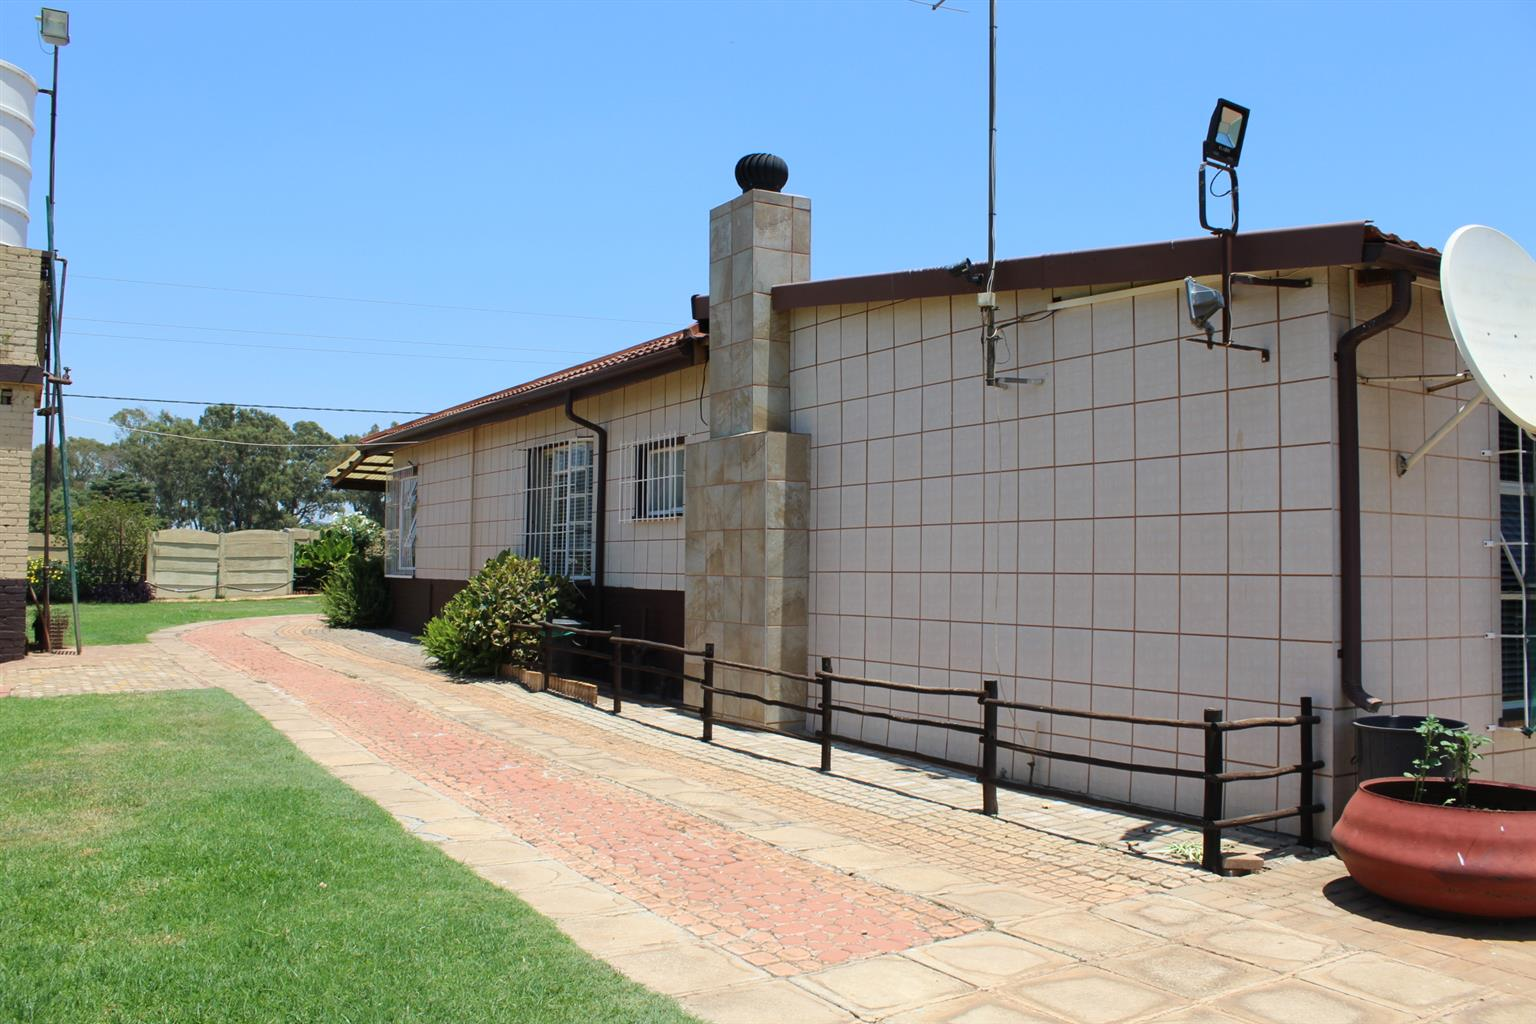 BENONI-BIIG BIG BARGAIN FOR YOU- 2.4 Ha-SPOTLESS RESIDENCE-7 CAR PORTS-ONLY R1.4 Mil